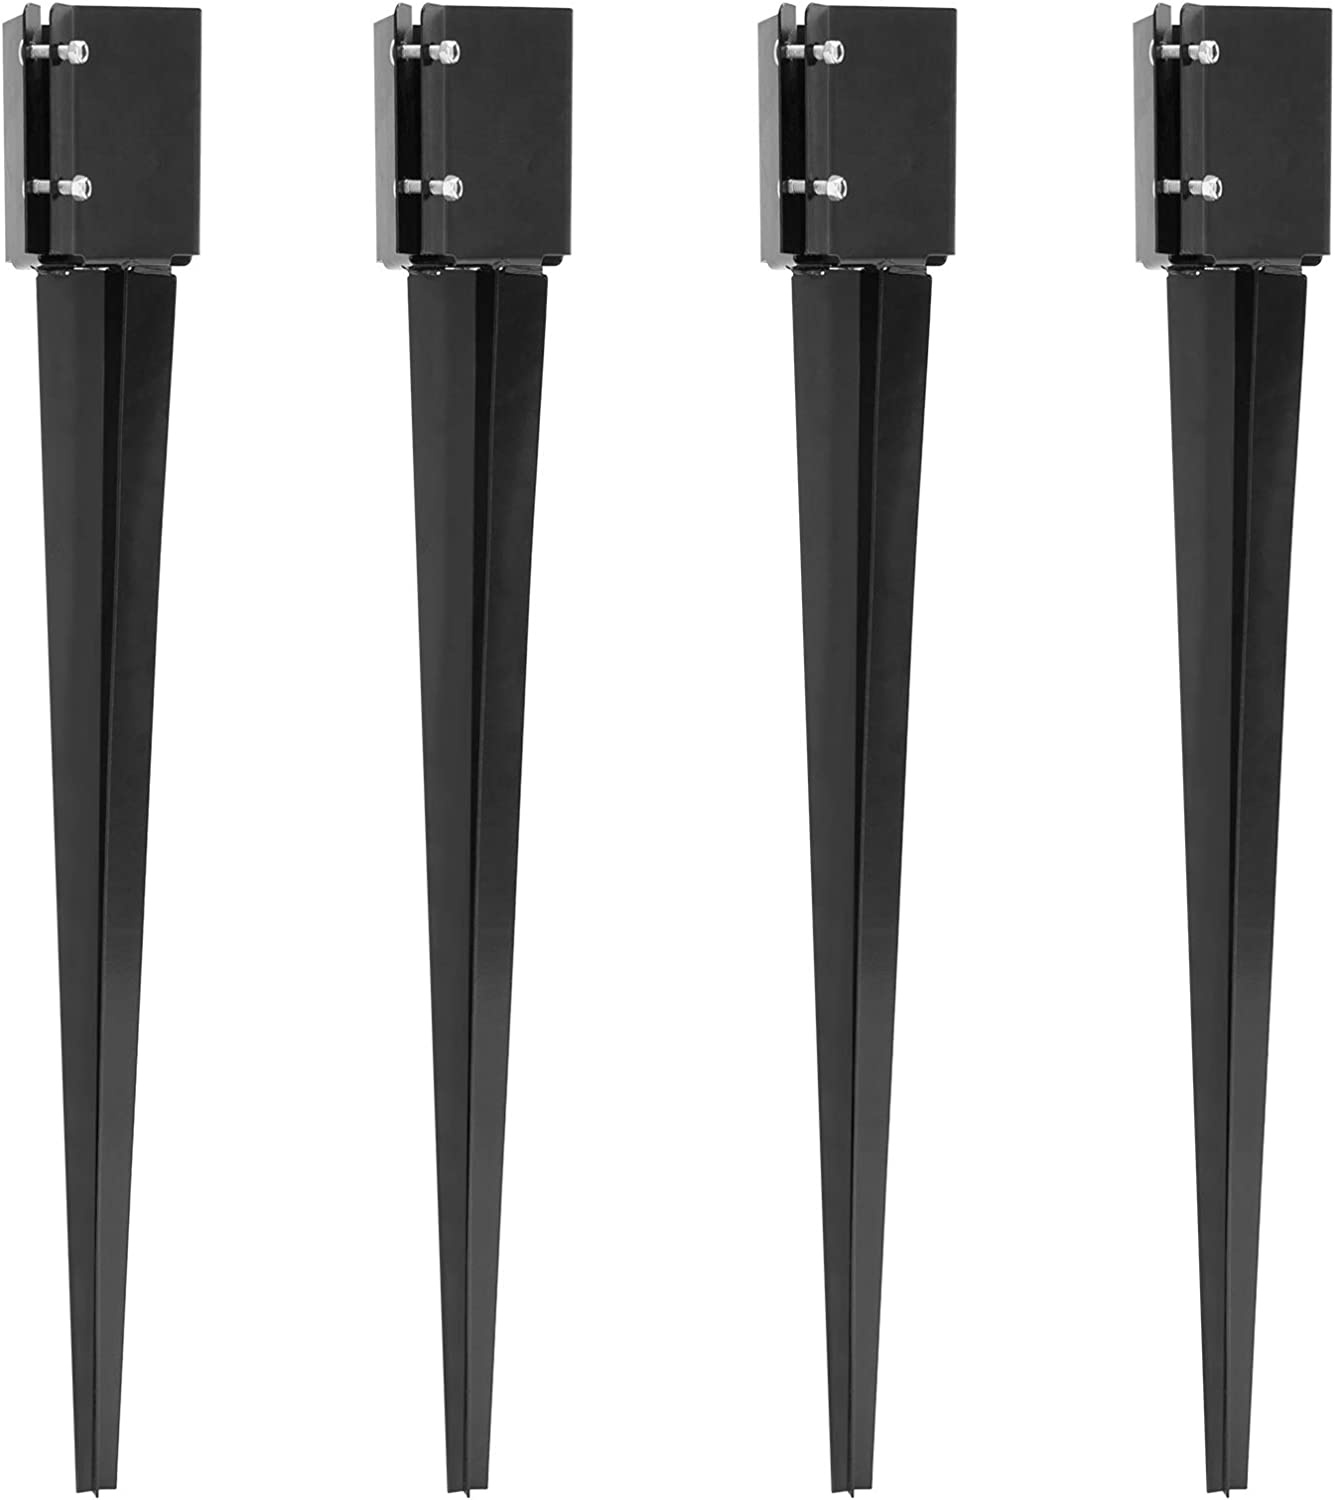 Doniks 4 Pack Fence Post Anchor Ground Spike 24 x 4X 4 inch Heavy Duty Metal Powder Coated Post Base for Mailbox Fence Guidepost Garden Ground Post Nail with Tightening Screws Lock Nuts